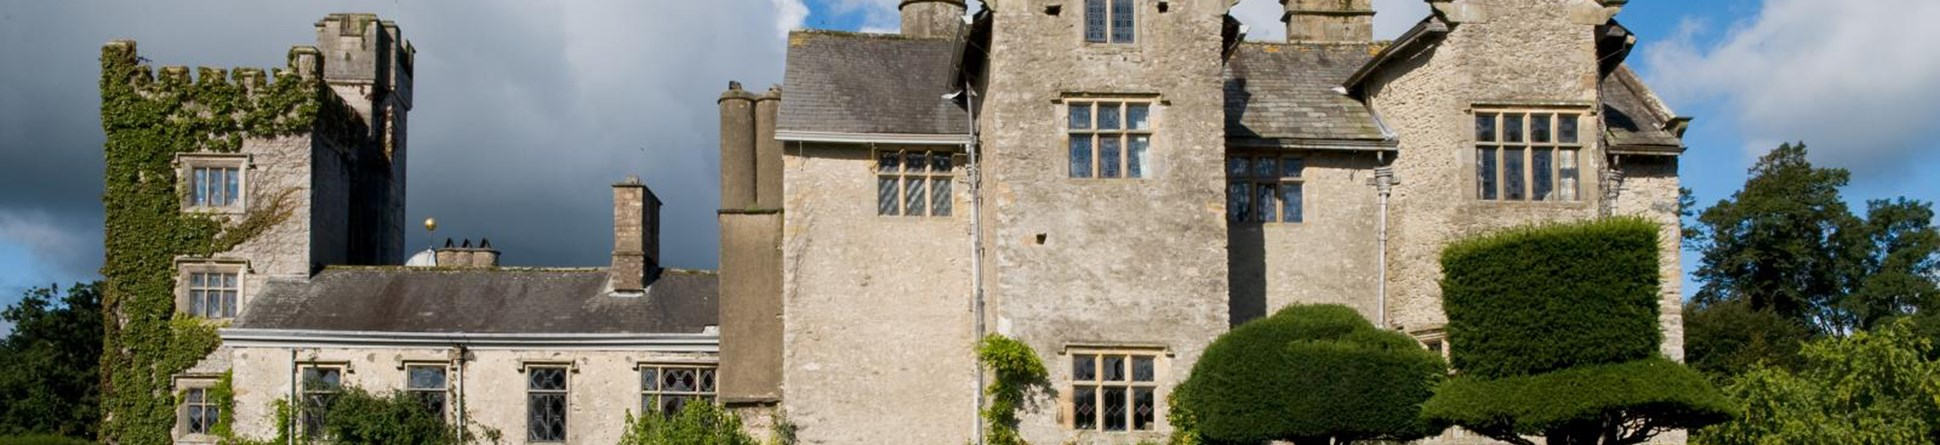 Photo of the outside of Levens Hall, a 16th century country house